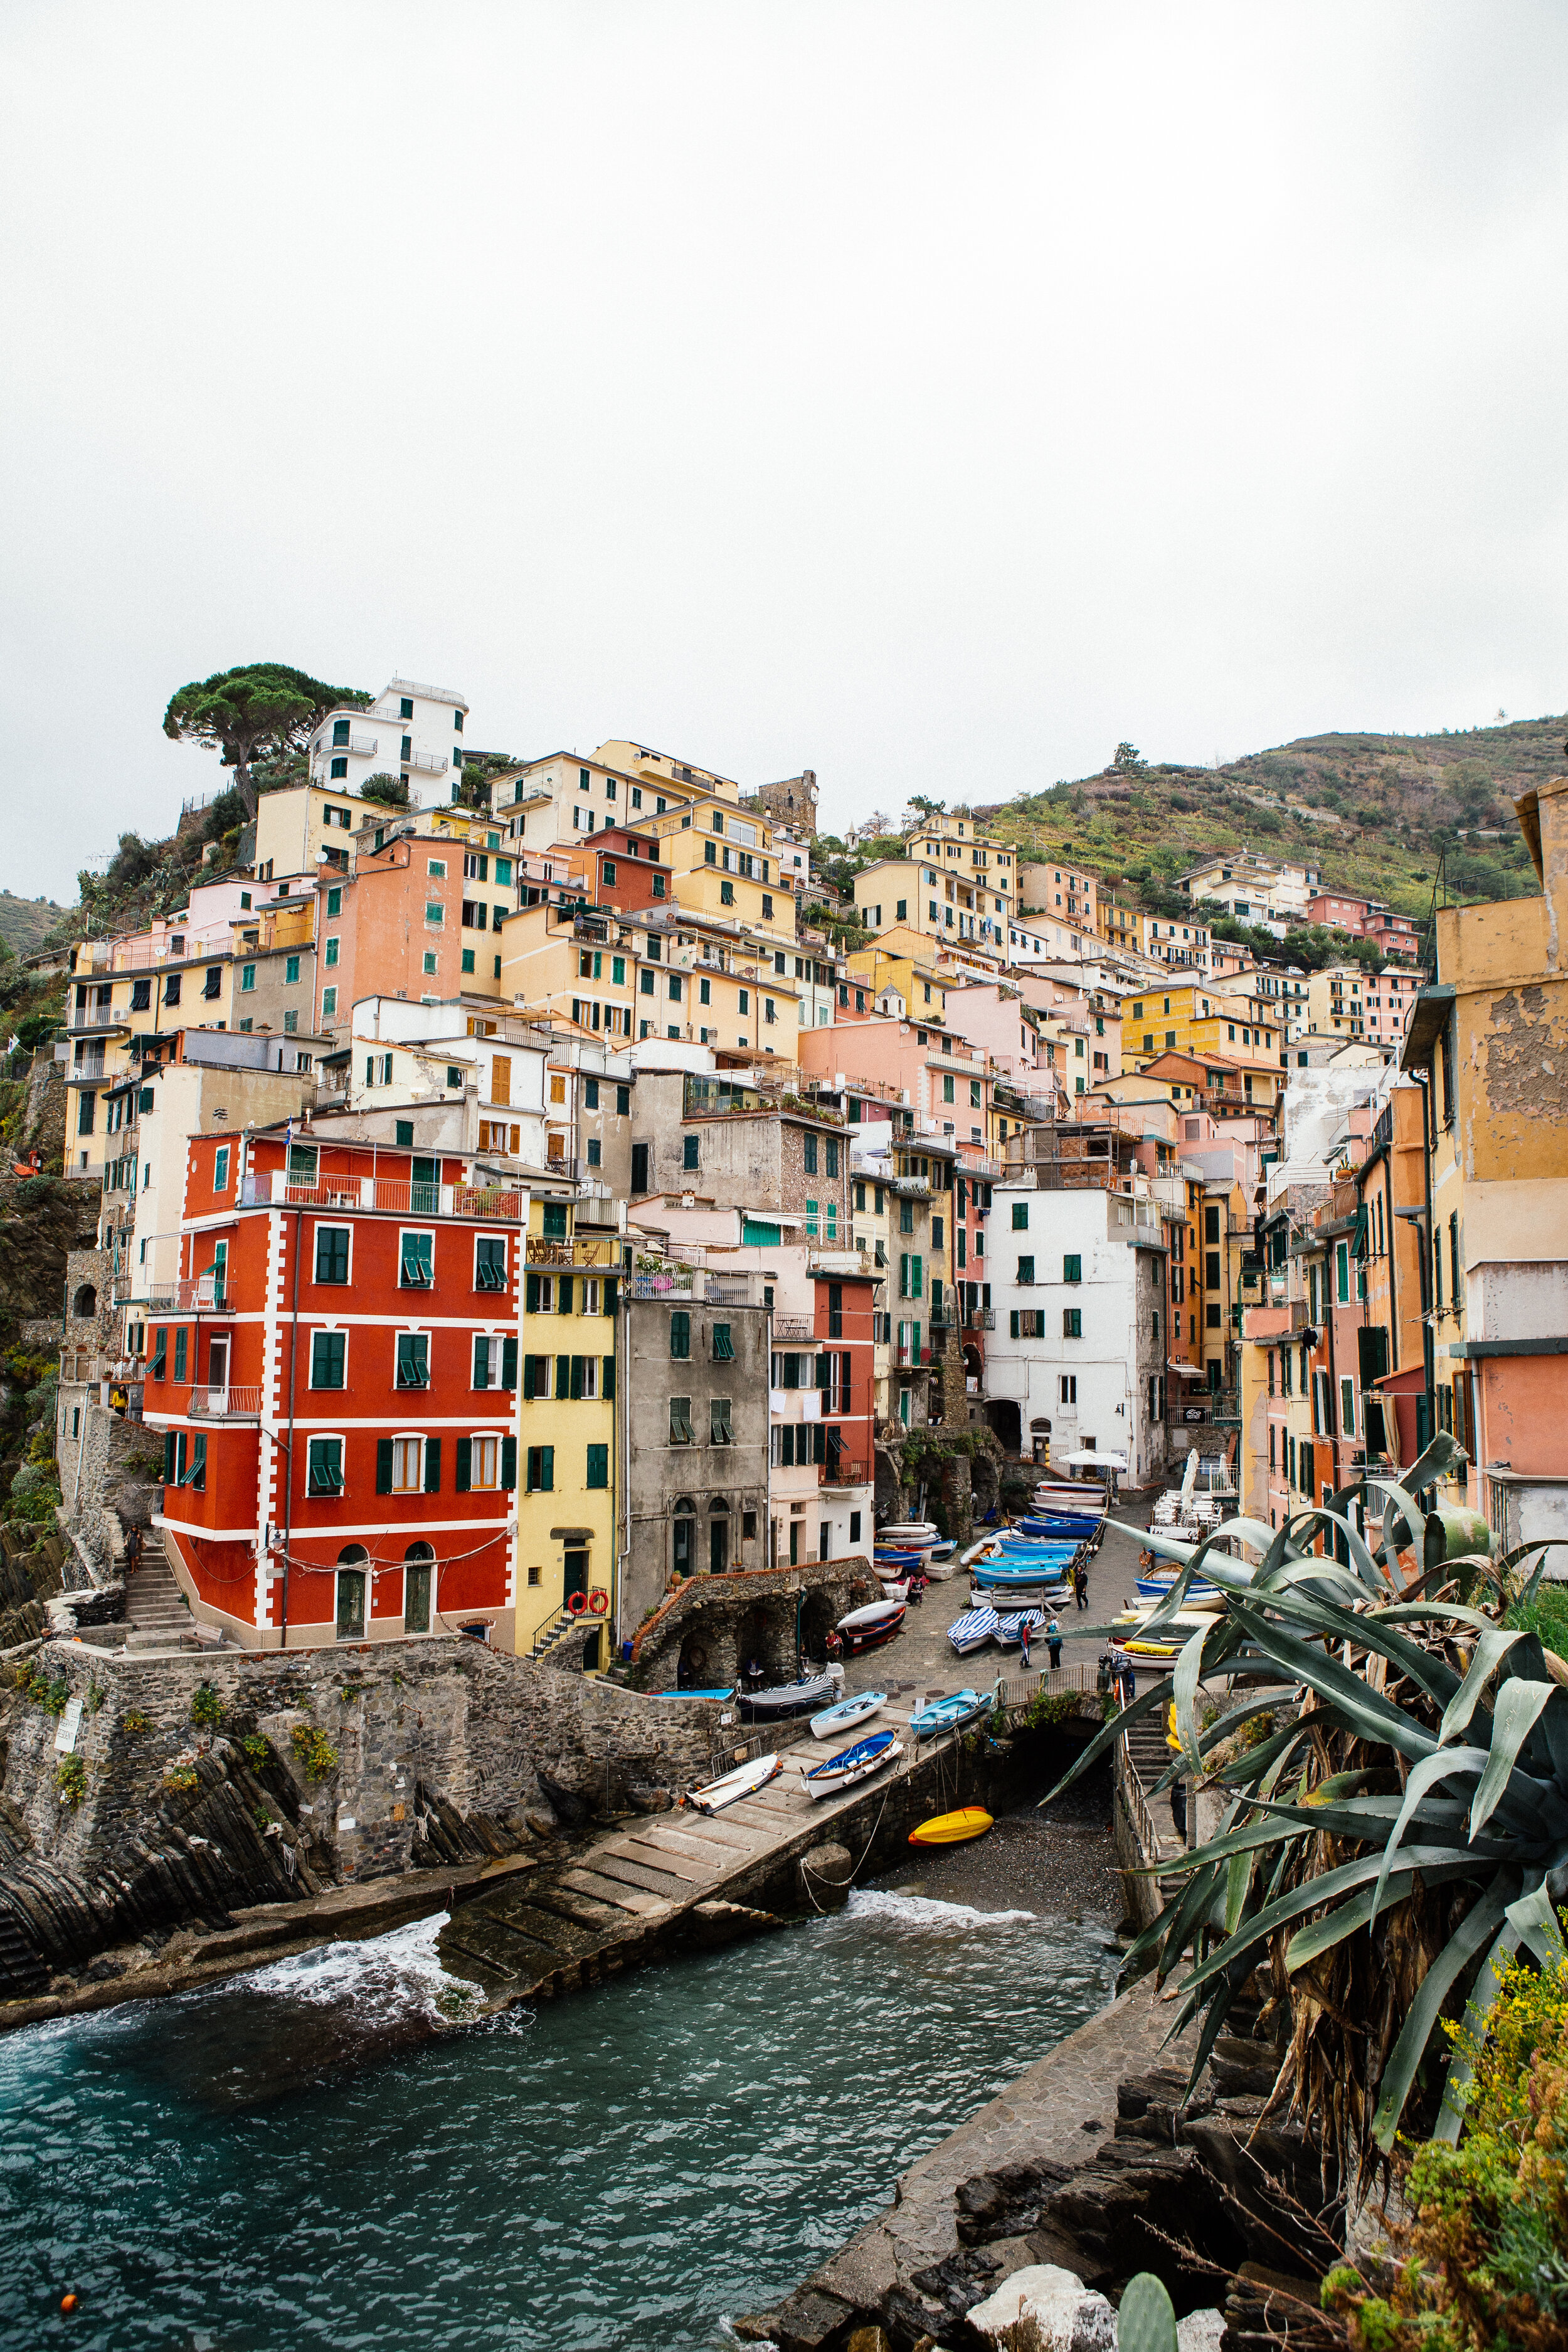 RIOMAGGIORE - Italy - It's the easternmost, the largest, and the prettiest village of the Cinque Terre — a UNESCO World Heritage. Everything is beautiful here, the sea, the streets… But it's better to explore this village early in the morning when it's calm and not crowded yet.